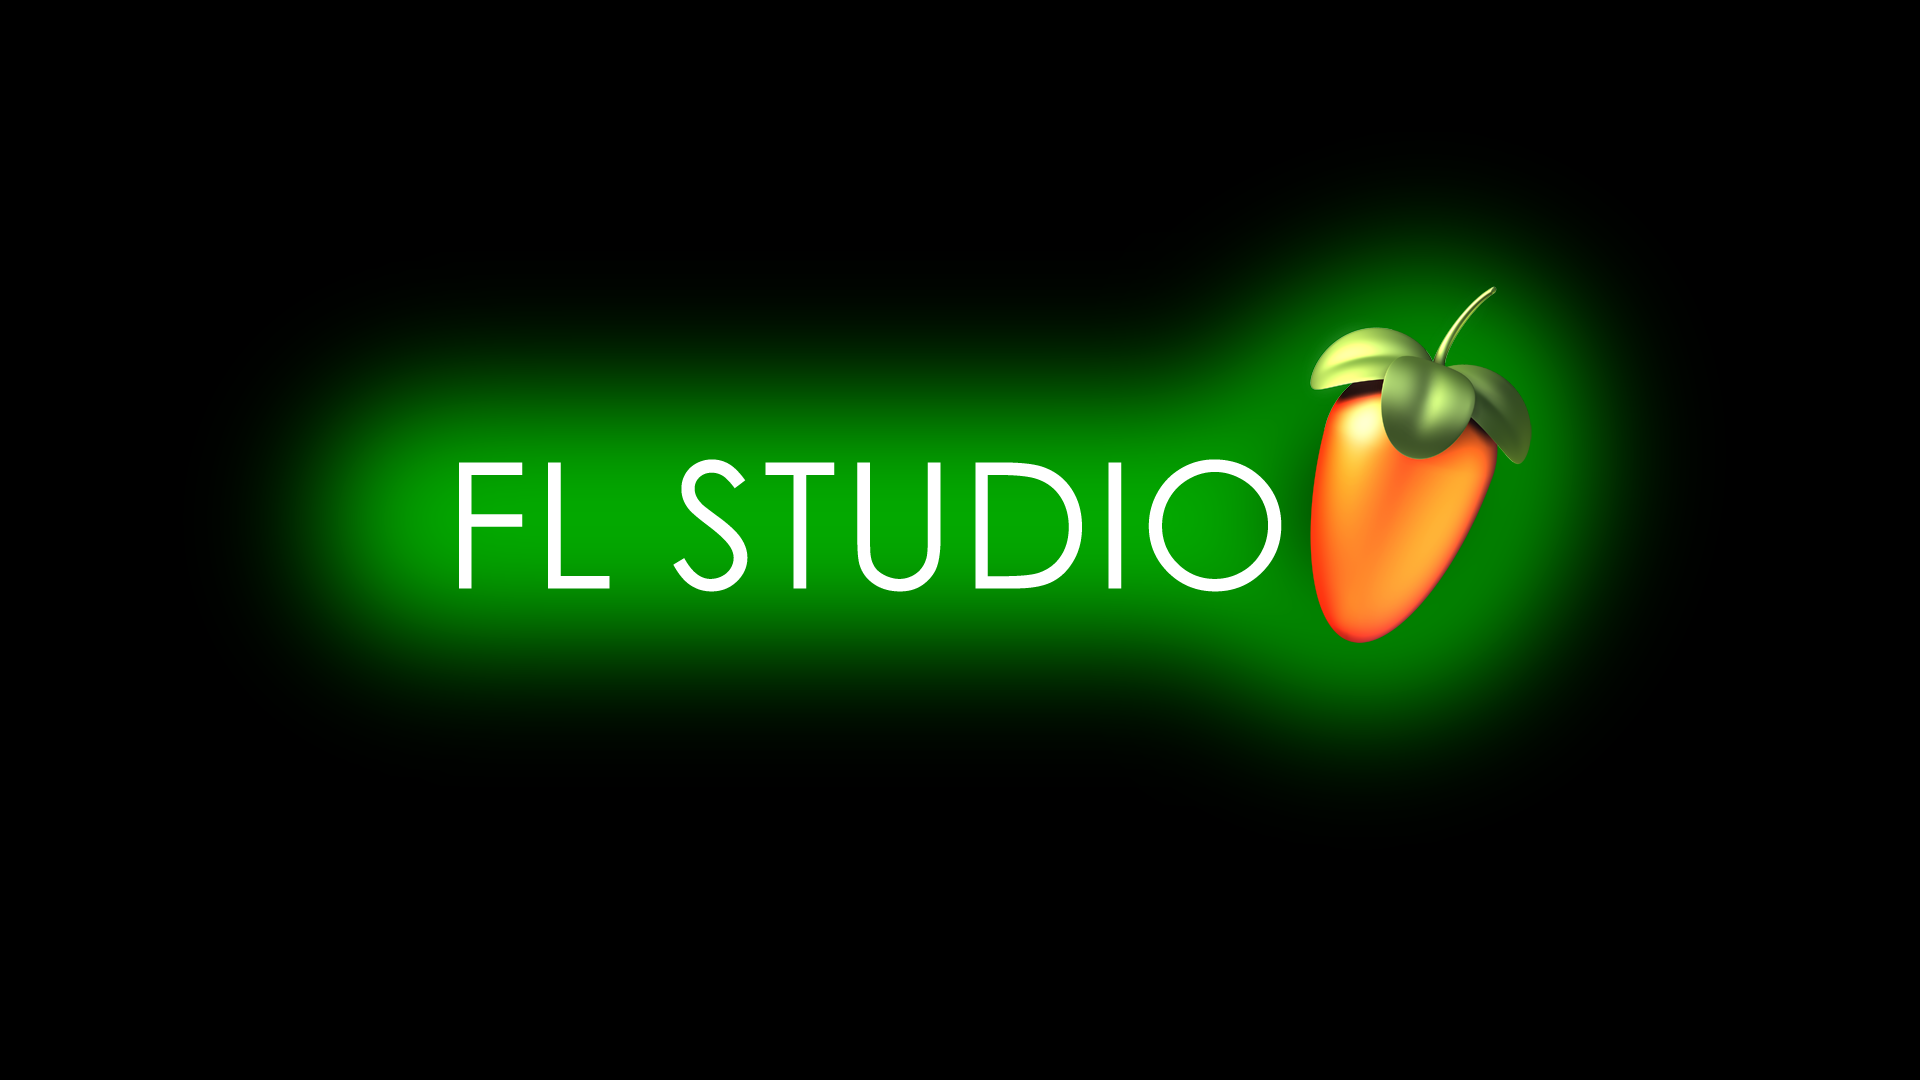 FL Studio 2020 Crack With Keygen Full Version Free Download